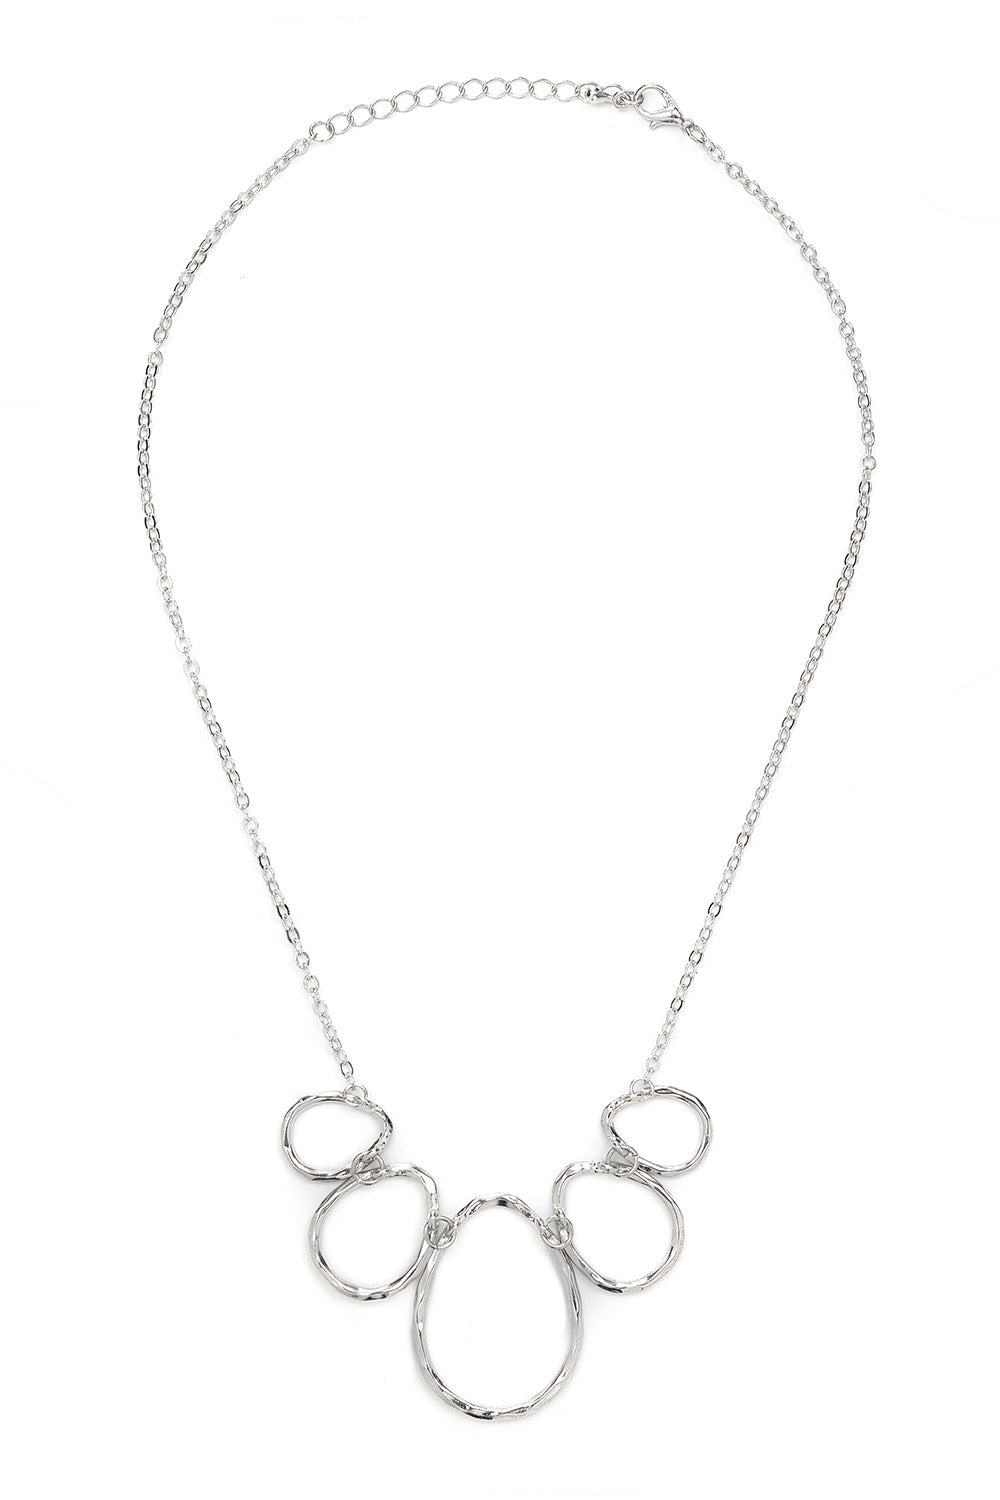 Type 4 Silver Egg Necklace